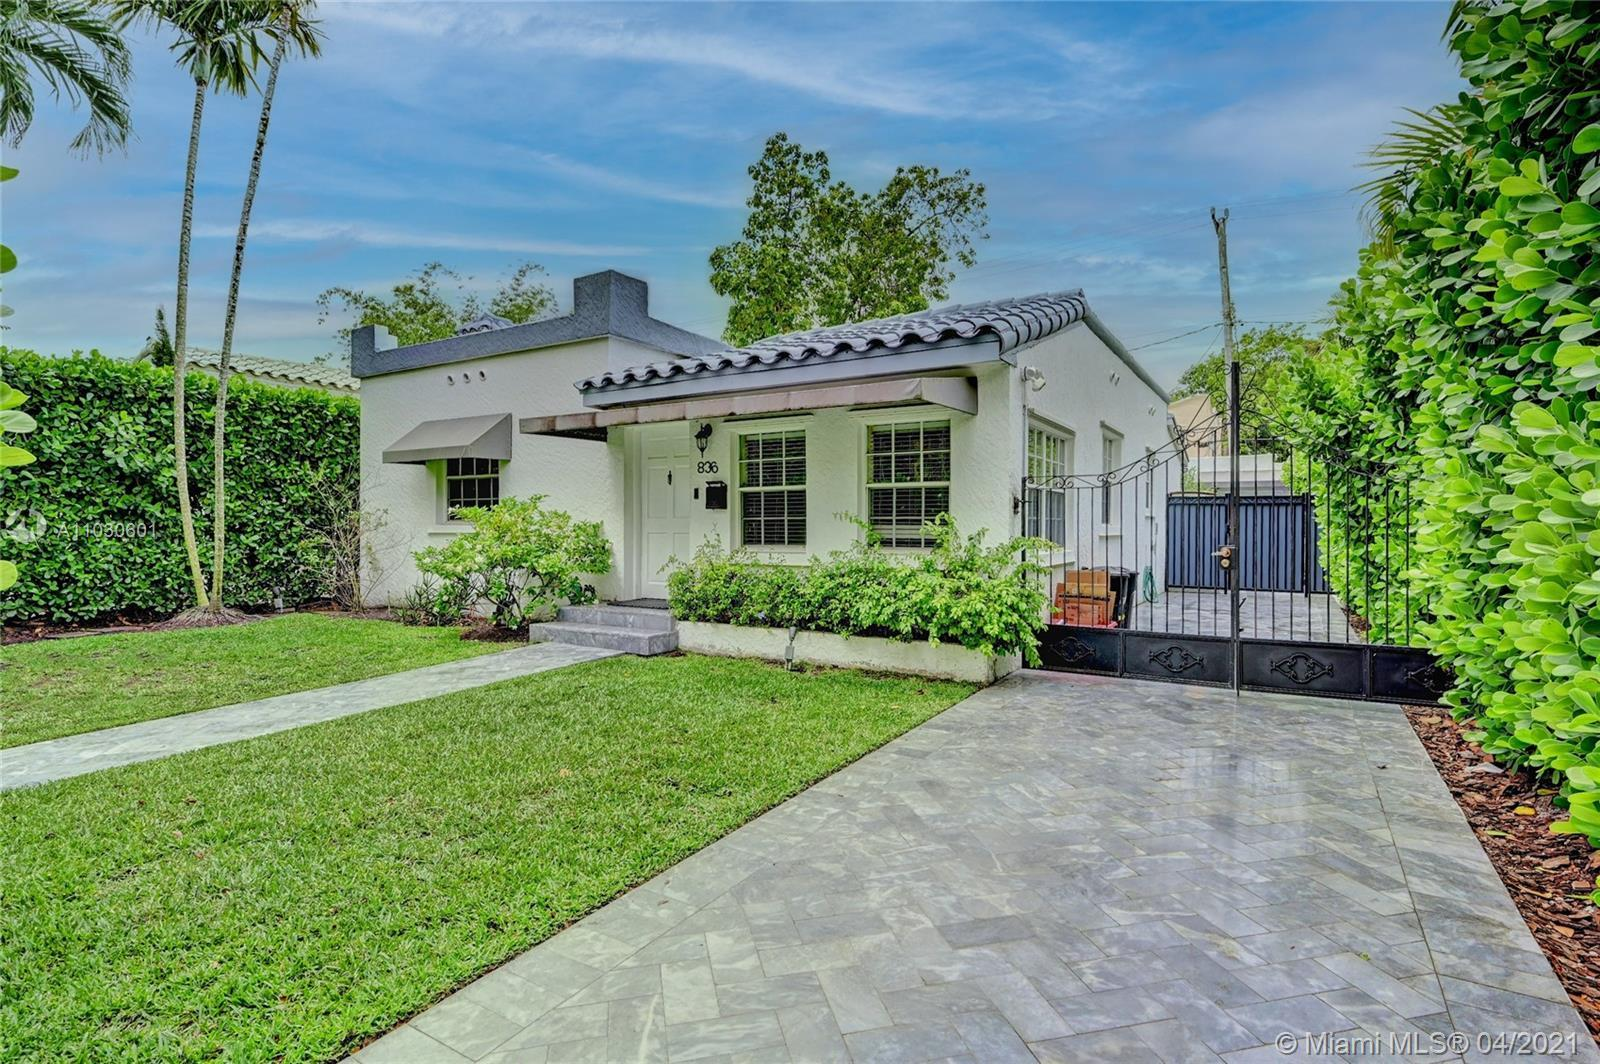 Spectacular residence! The main house has been remodeled to include two bedrooms and one bath, as we